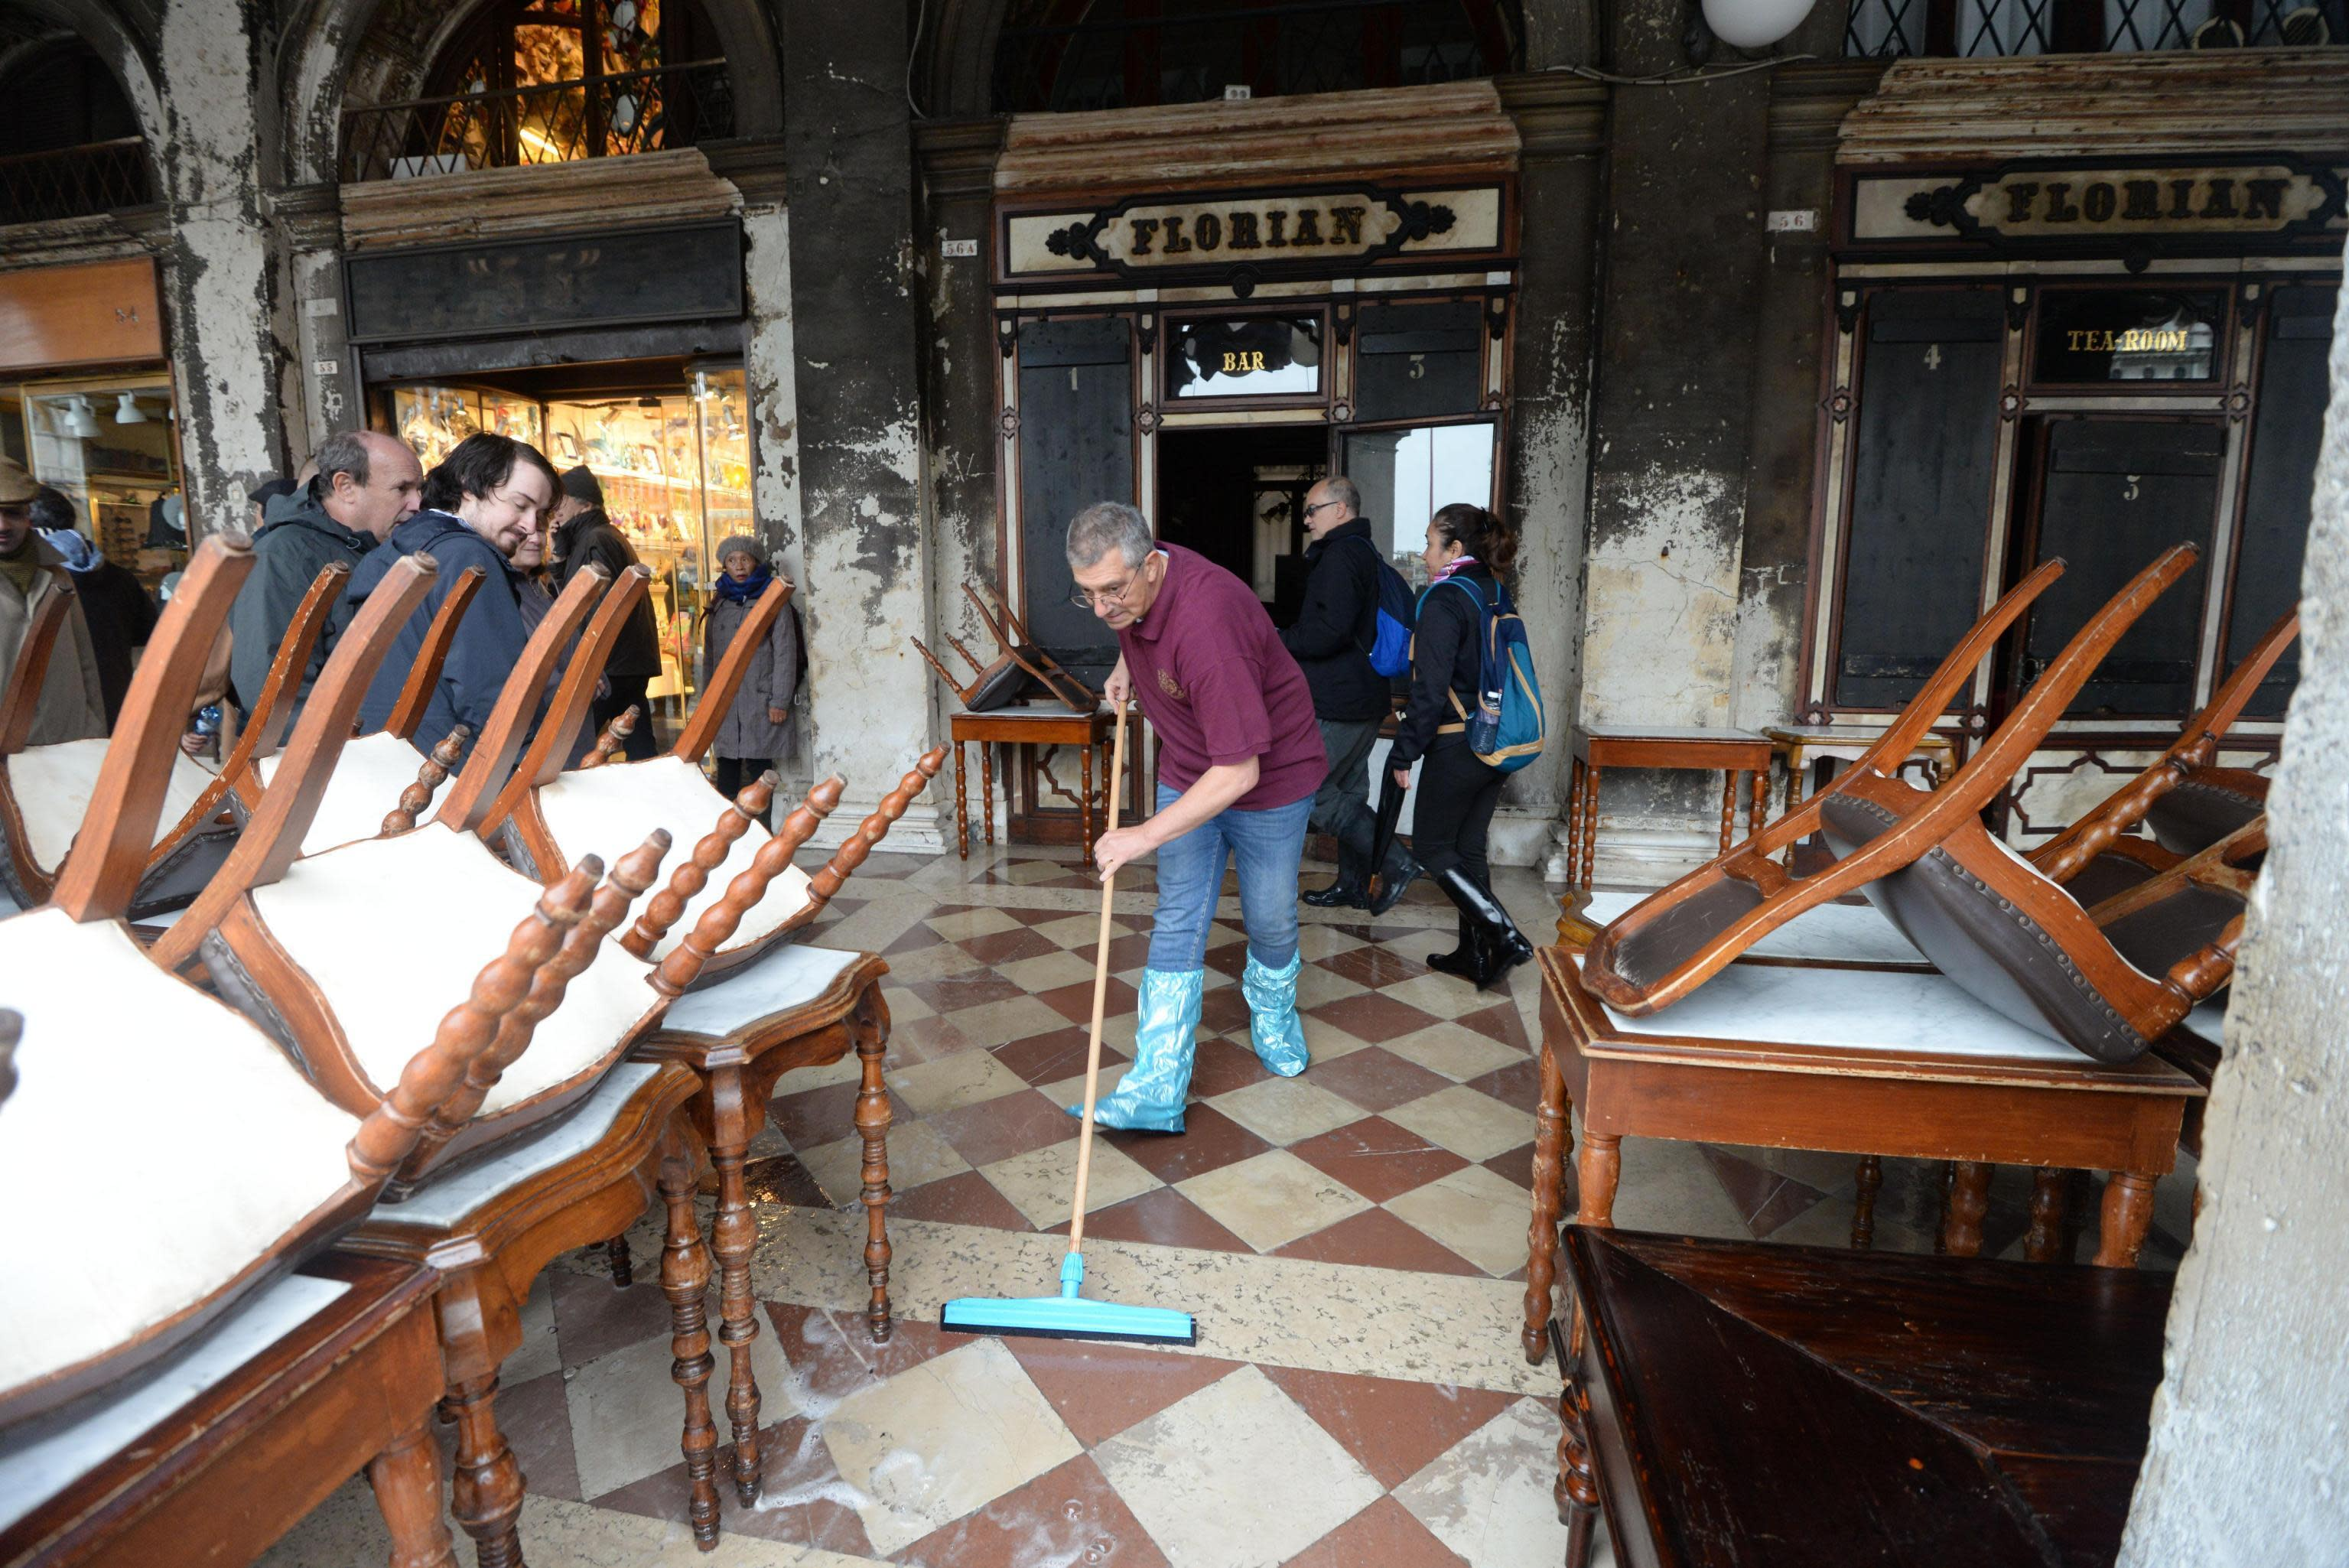 A man cleans water out of the historical Florian cafe, in Venice, Italy, Wednesday, Nov. 13, 2019. The high-water mark hit 187 centimeters (74 inches) late Tuesday, Nov. 12, 2019, meaning more than 85% of the city was flooded. The highest level ever recorded was 194 centimeters (76 inches) during infamous flooding in 1966. (Andrea Merola/ANSA via AP)